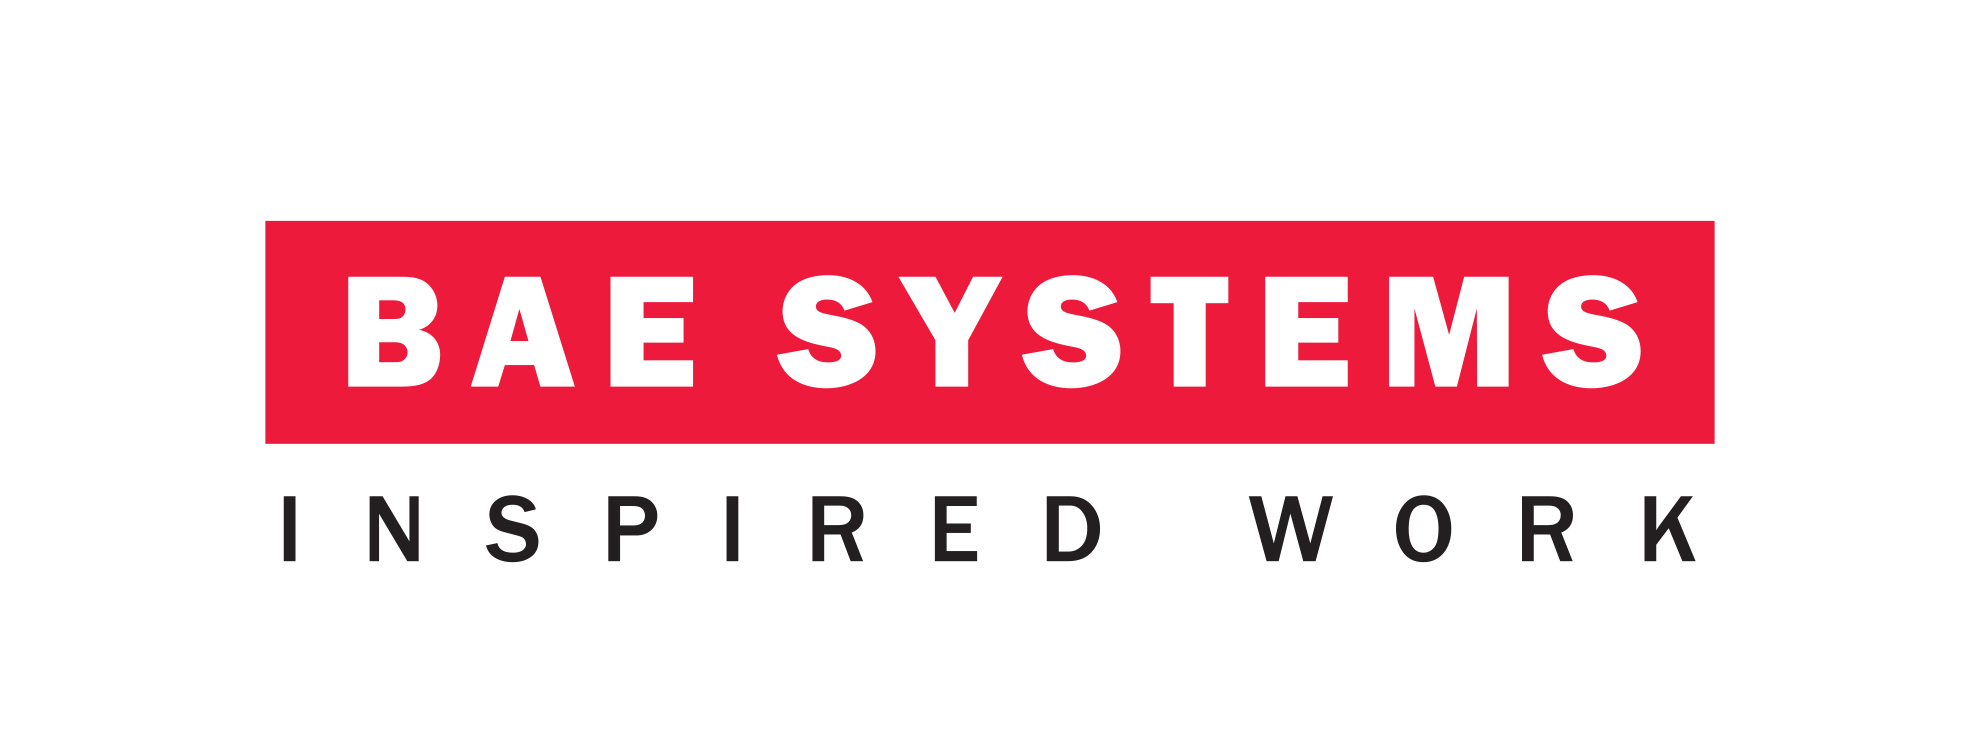 BAE Systems logo_INSPIRED